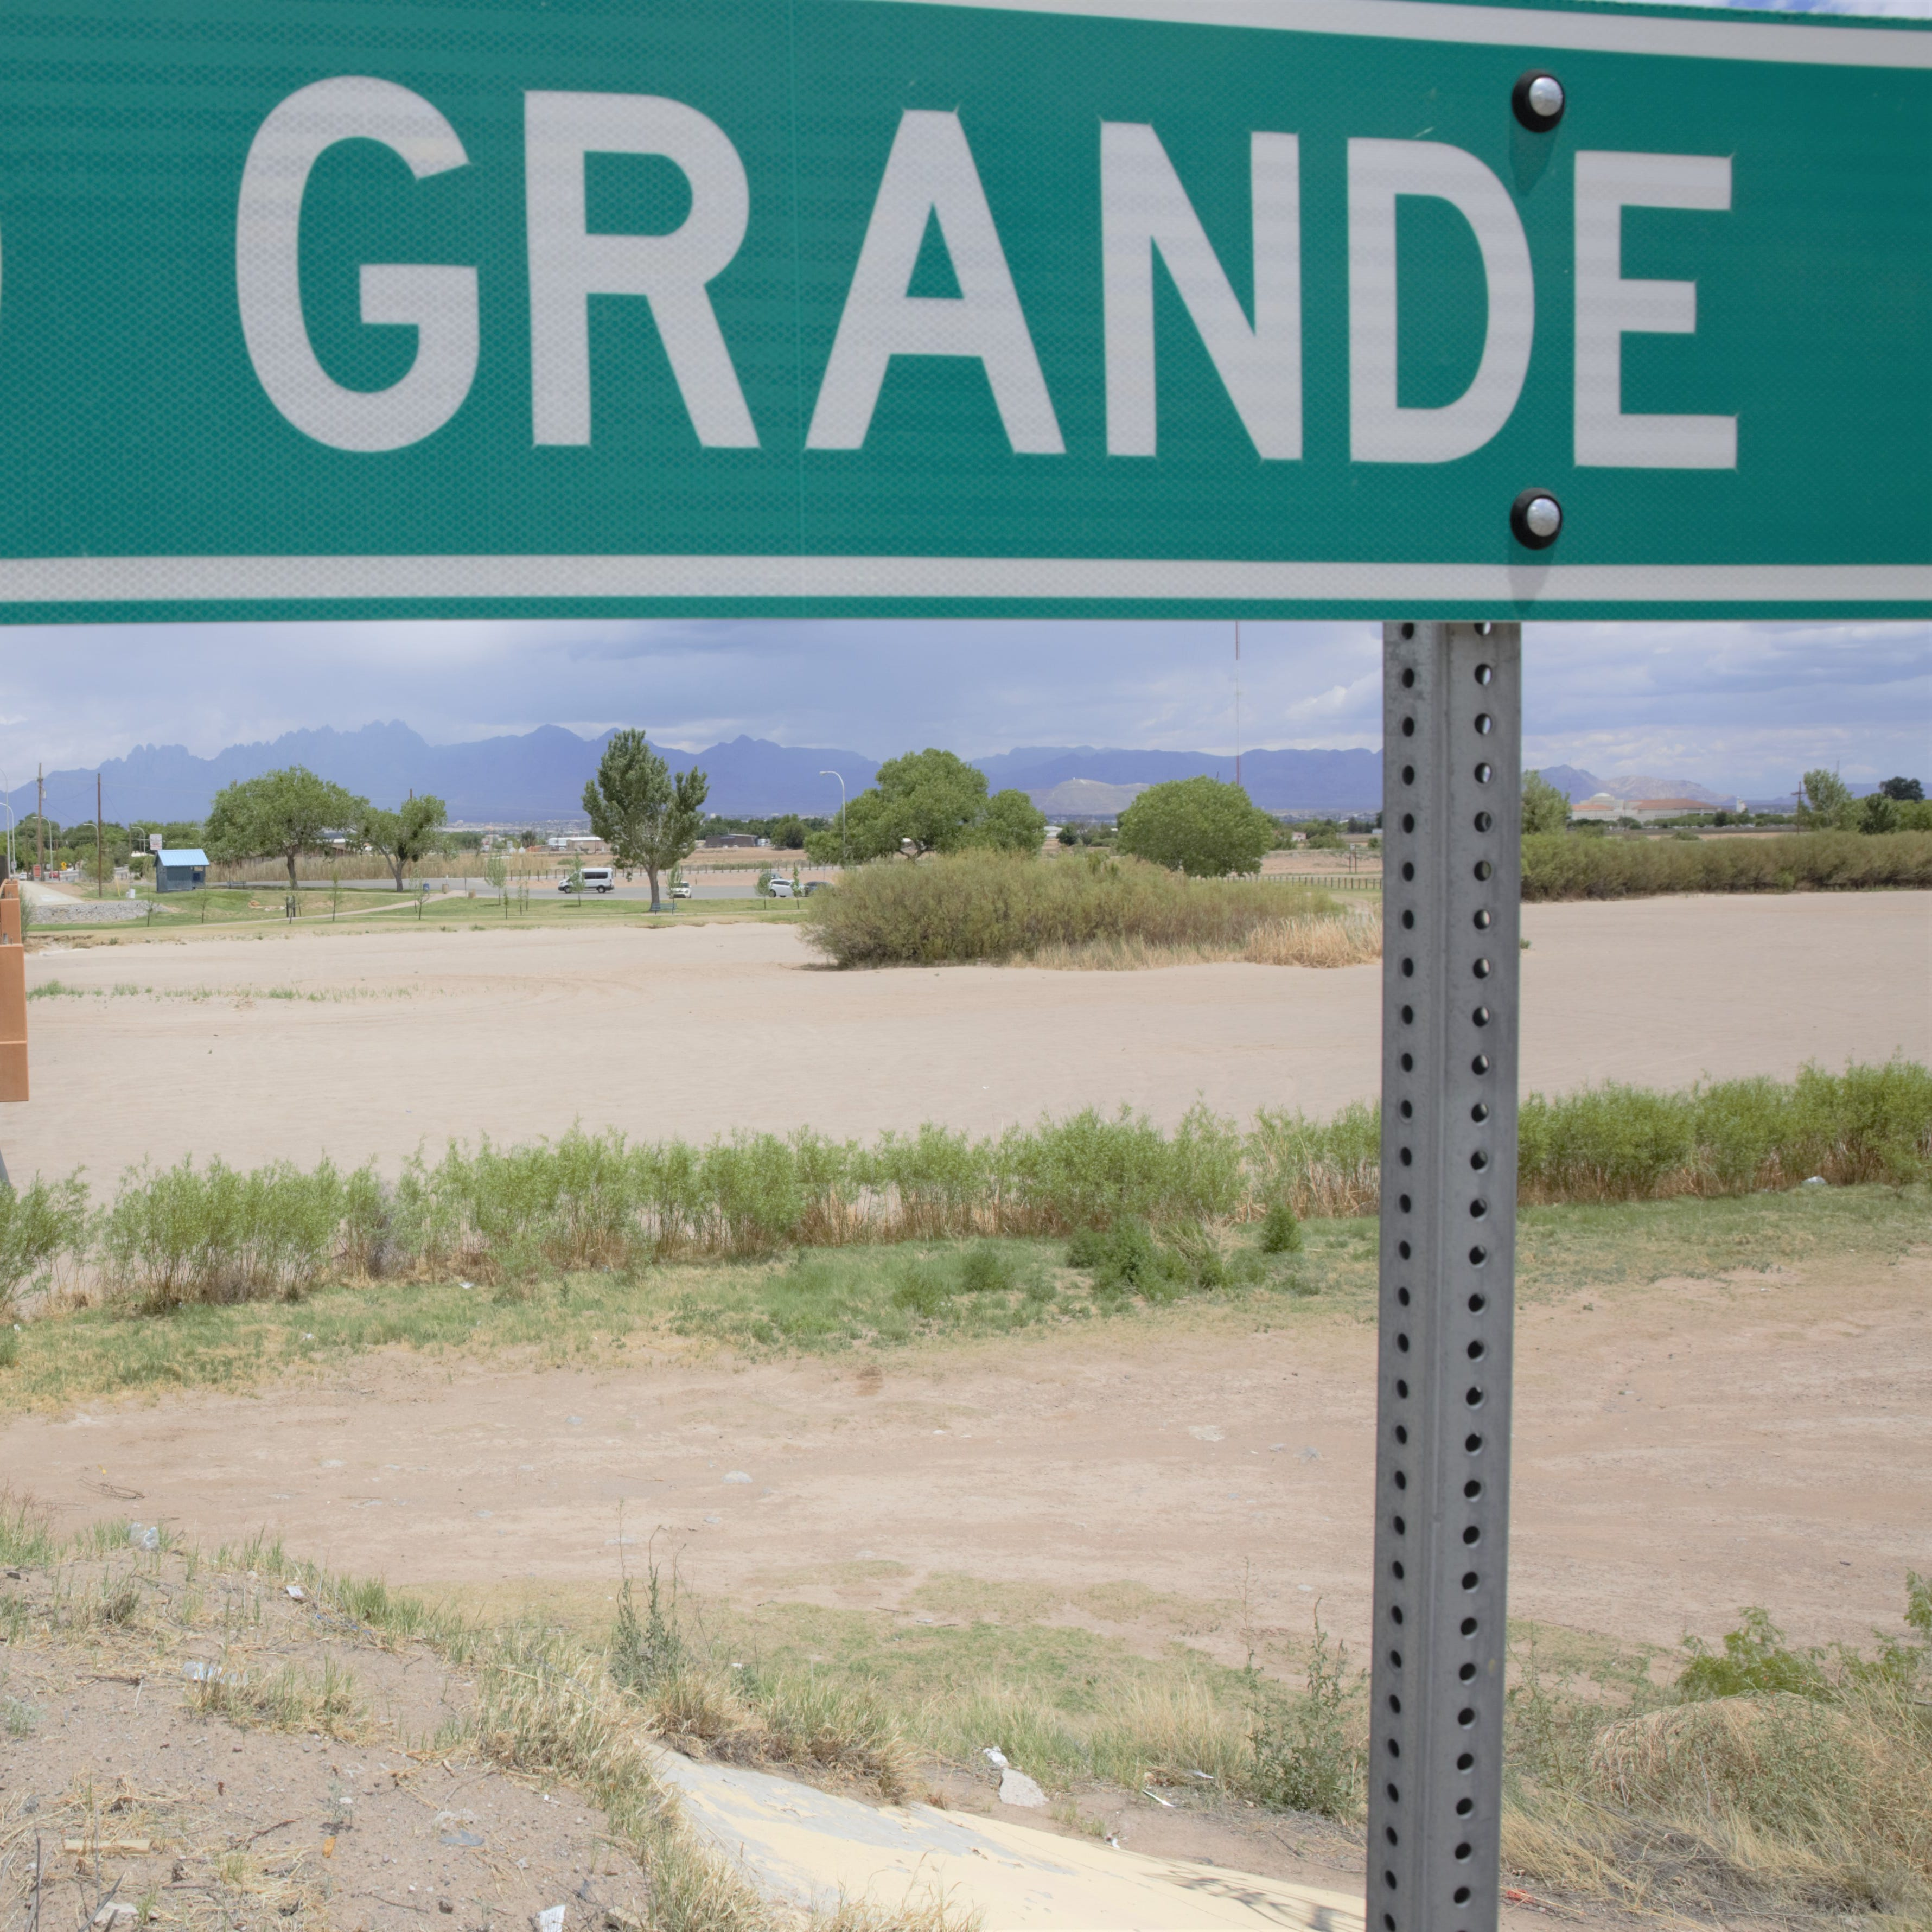 When will Rio Grande start flowing in Las Cruces?